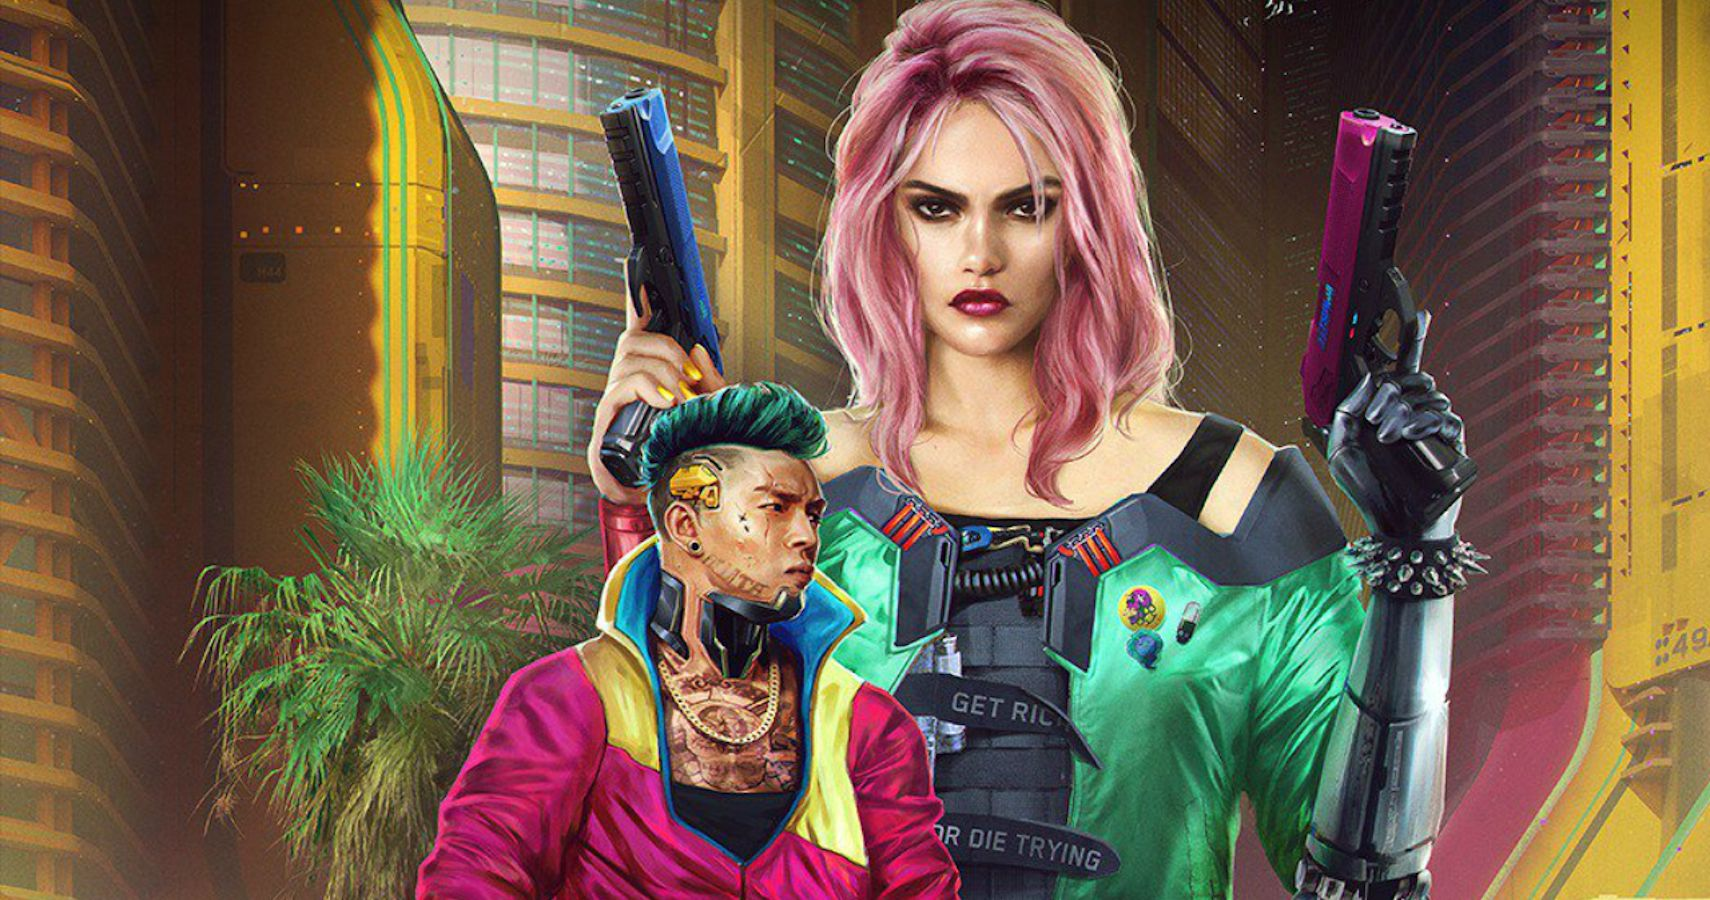 Cyberpunk 2077 Will Include Three Origins To Choose From That Will Impact The Story